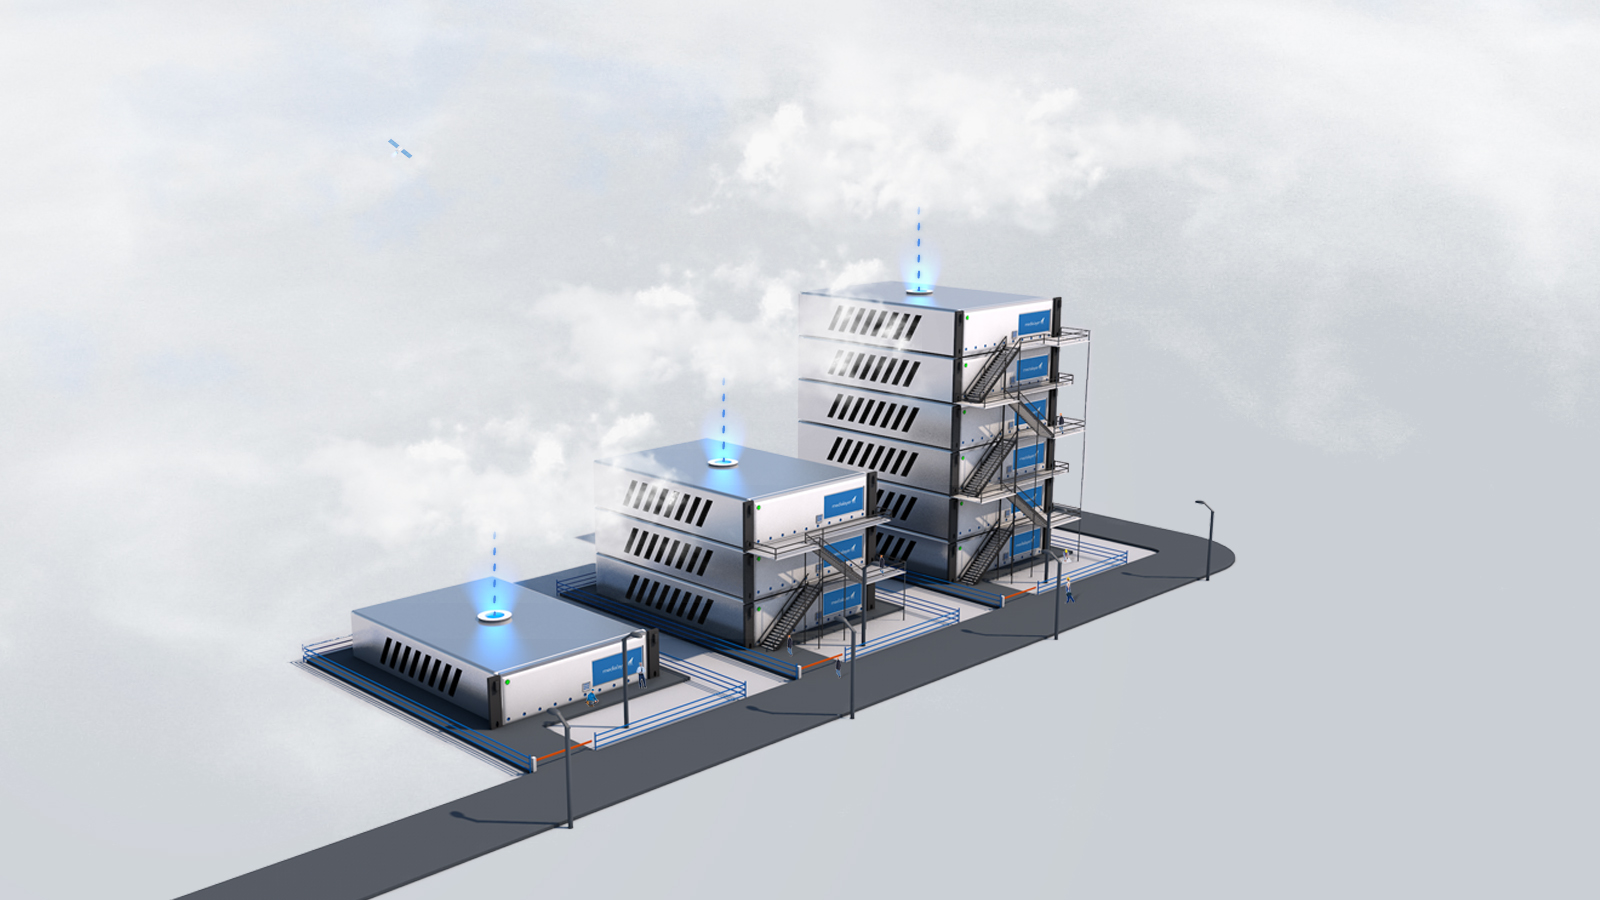 3D Illustration by Timi Kokol and Adam Roberts, showing hosting servers and data transferred in the clouds